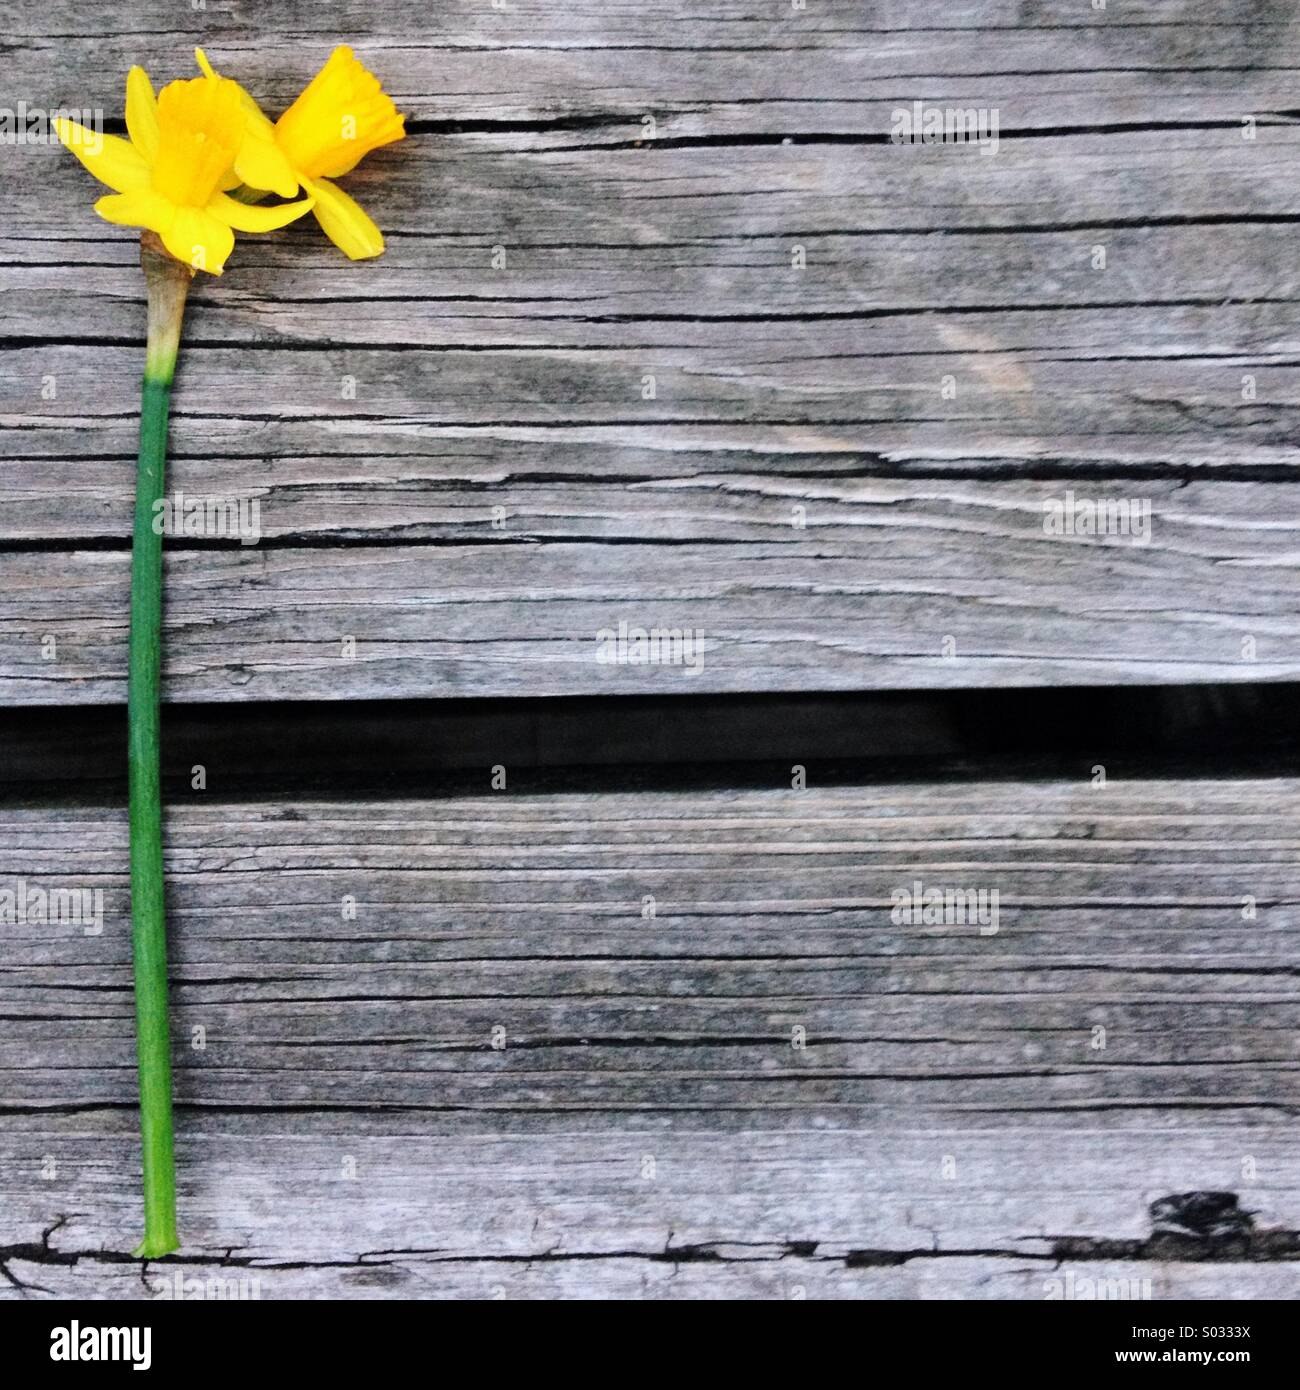 A double headed daffodil rests on a wooden background - Stock Image